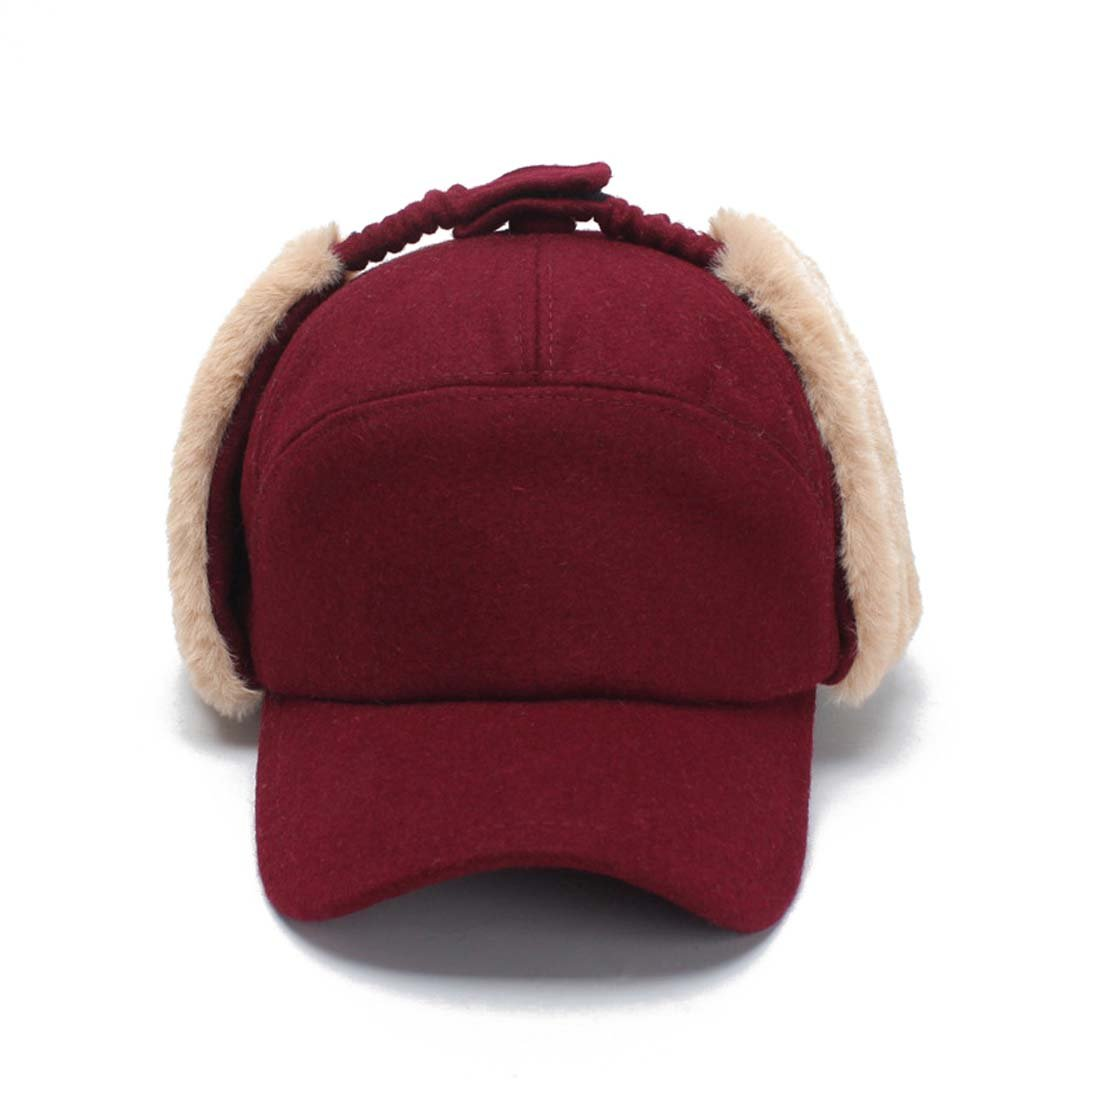 00af47389 Bomber Hats : Online Shopping for Clothing, Shoes, Jewelry, Pet ...